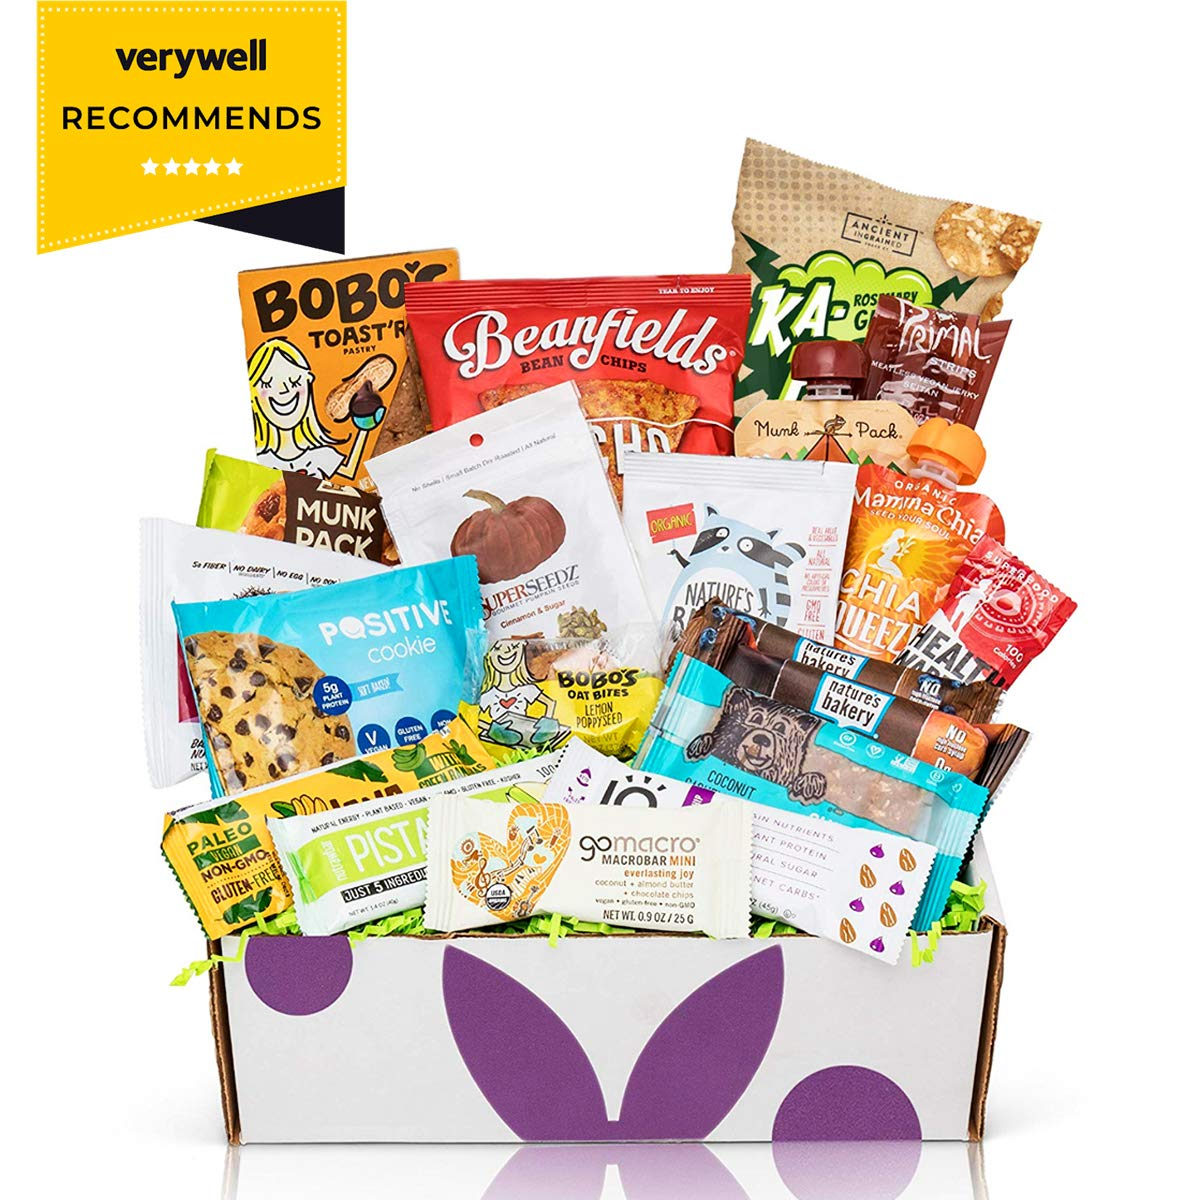 Healthy Vegan Snacks Care Package: Mix of Vegan Cookies, Protein Bars, Chips, Vegan Jerky, Fruit & Nut Snacks, Vegan Gift Box by BUNNY · JAMES ·